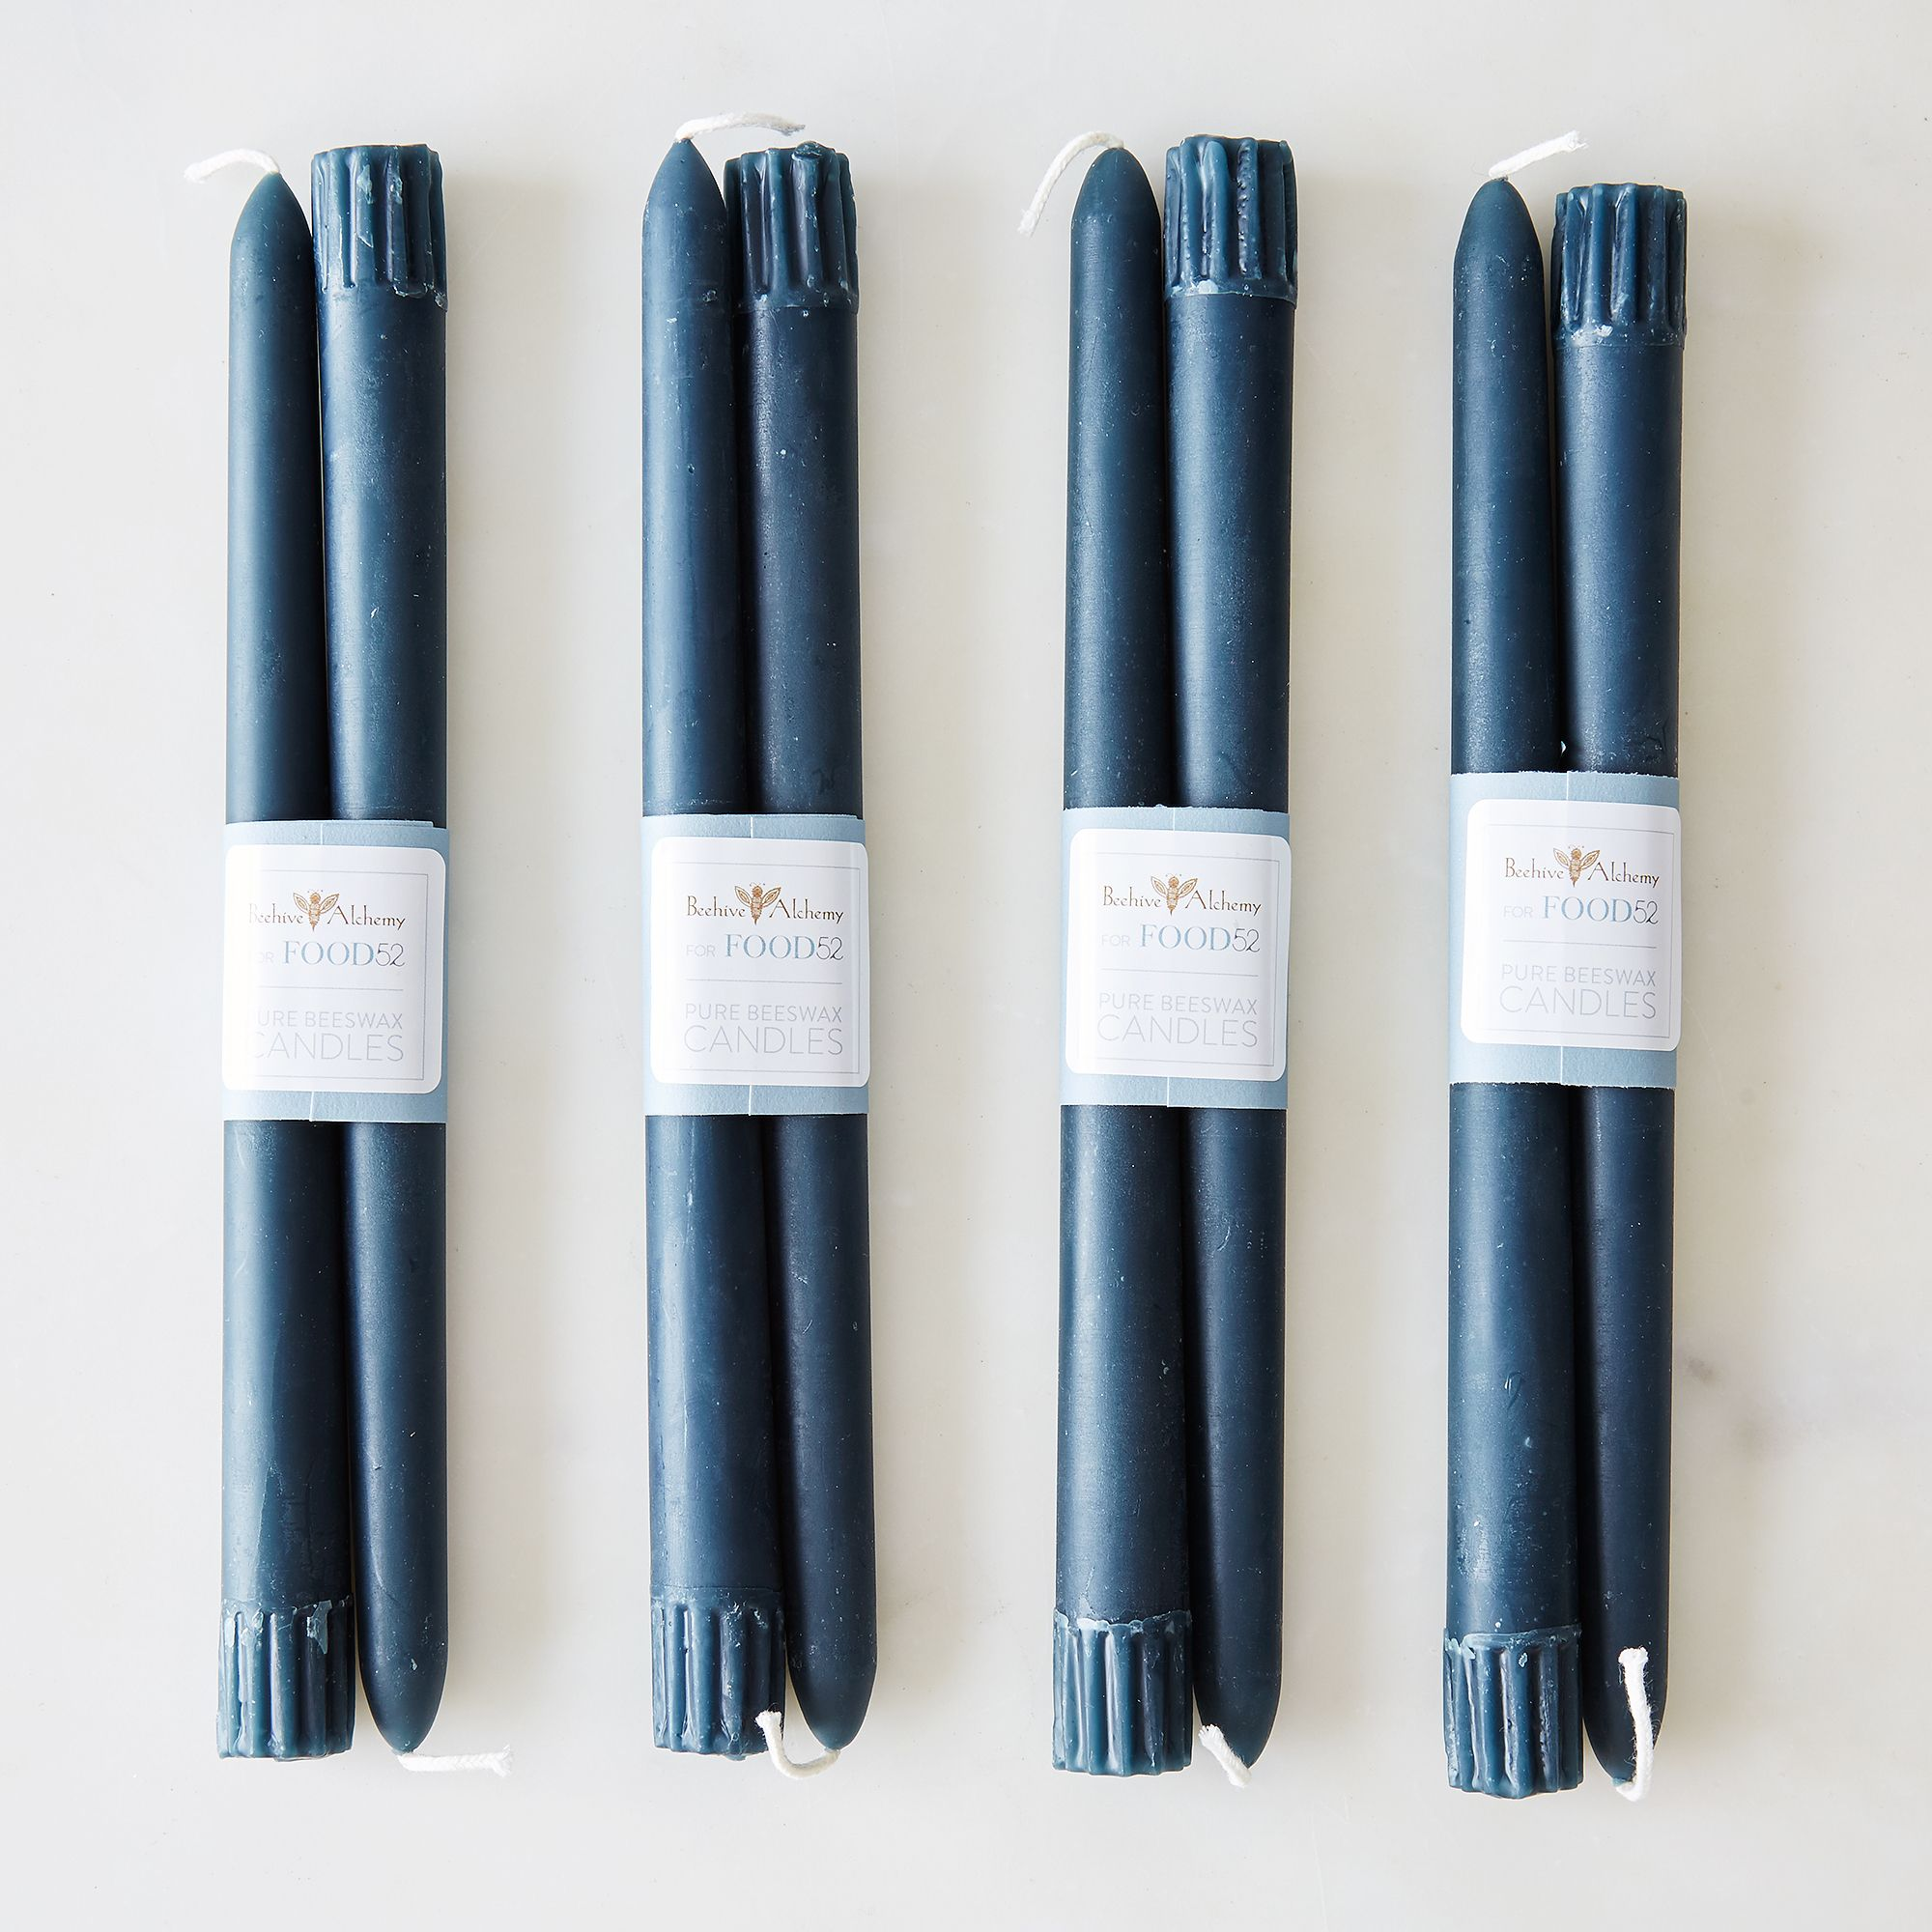 09820224 a0f8 11e5 a190 0ef7535729df  2015 0416 beehive alchemy 10 colored beeswax taper candles set of 8 deep ocean silo bobbi lin 1415